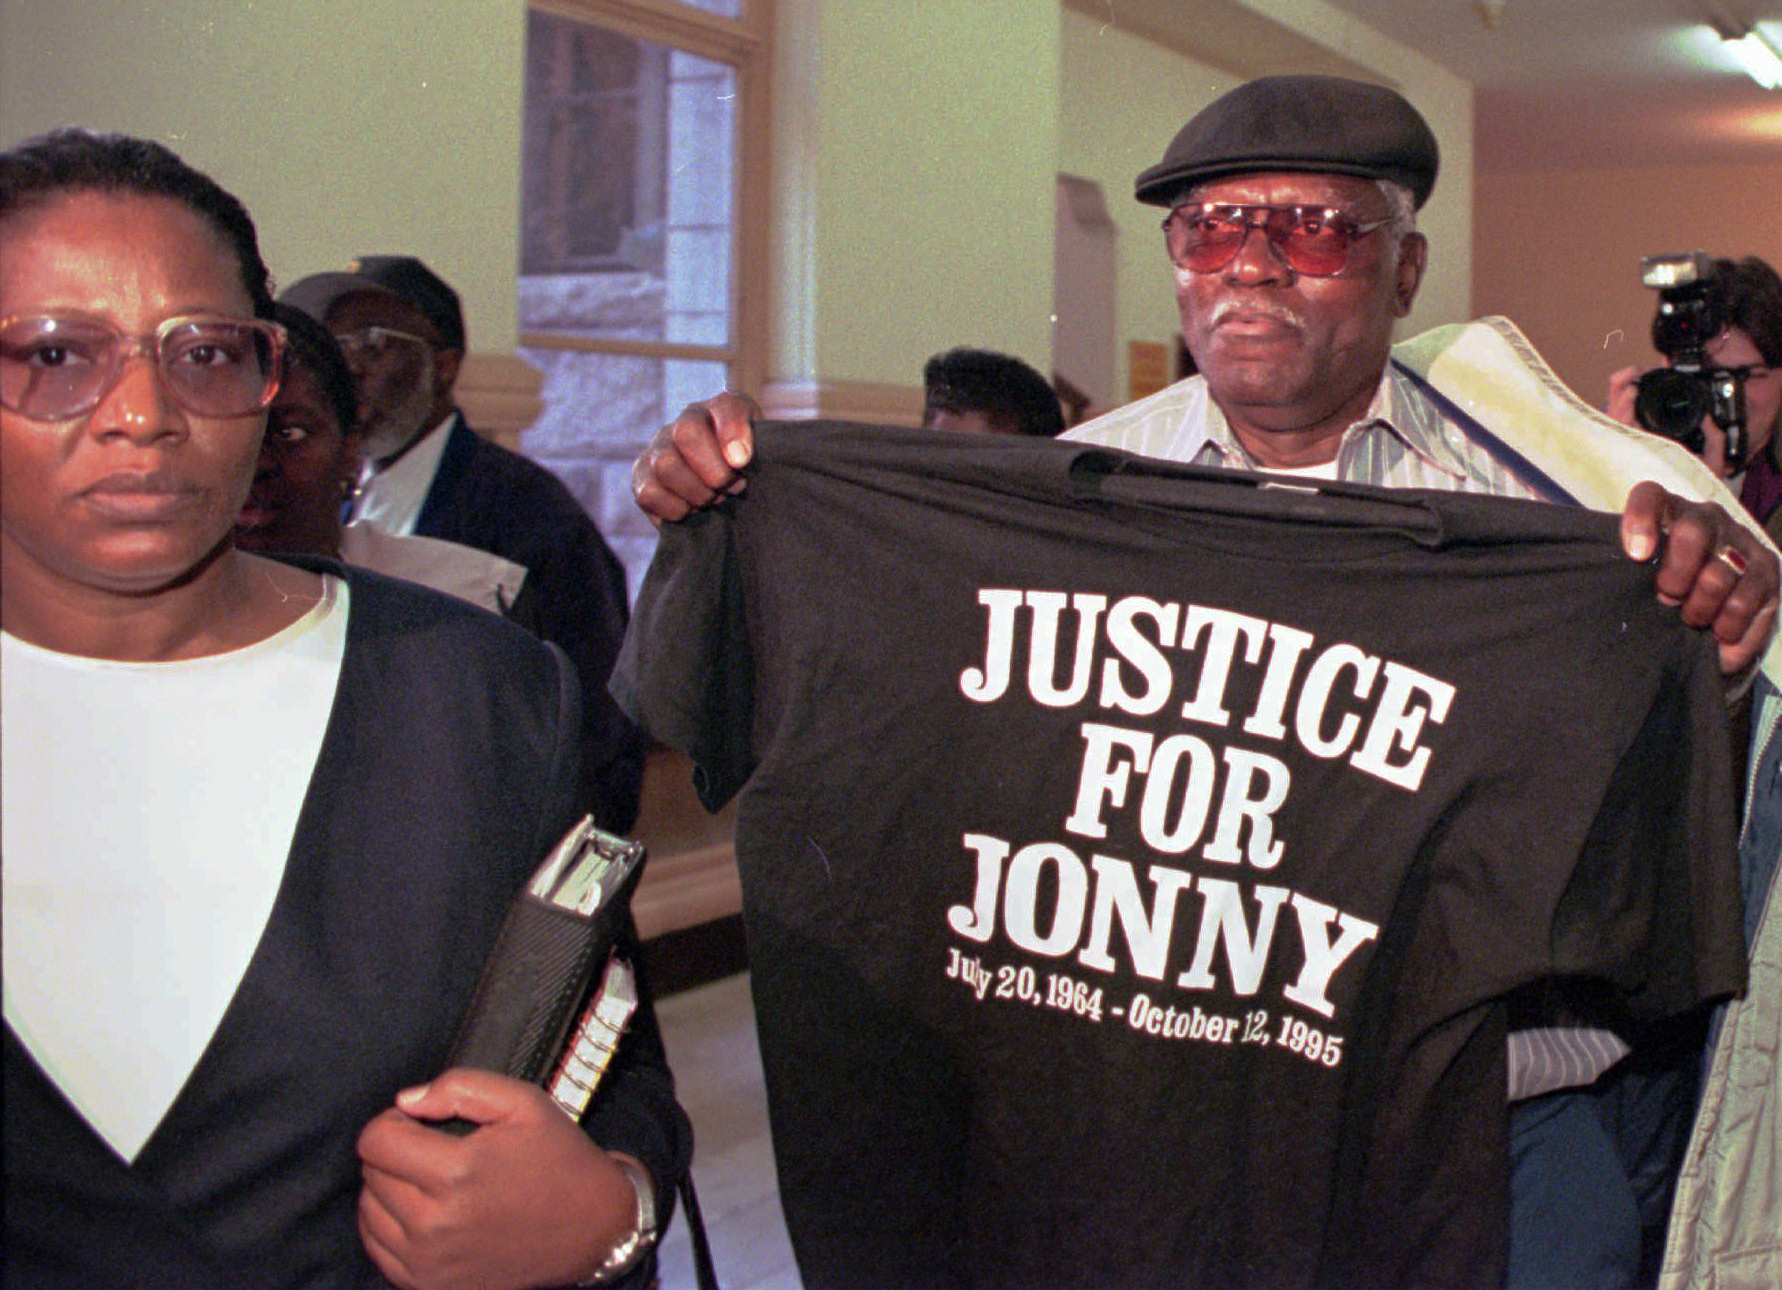 man holding up tshirt that reads 'Justice for Jonny'